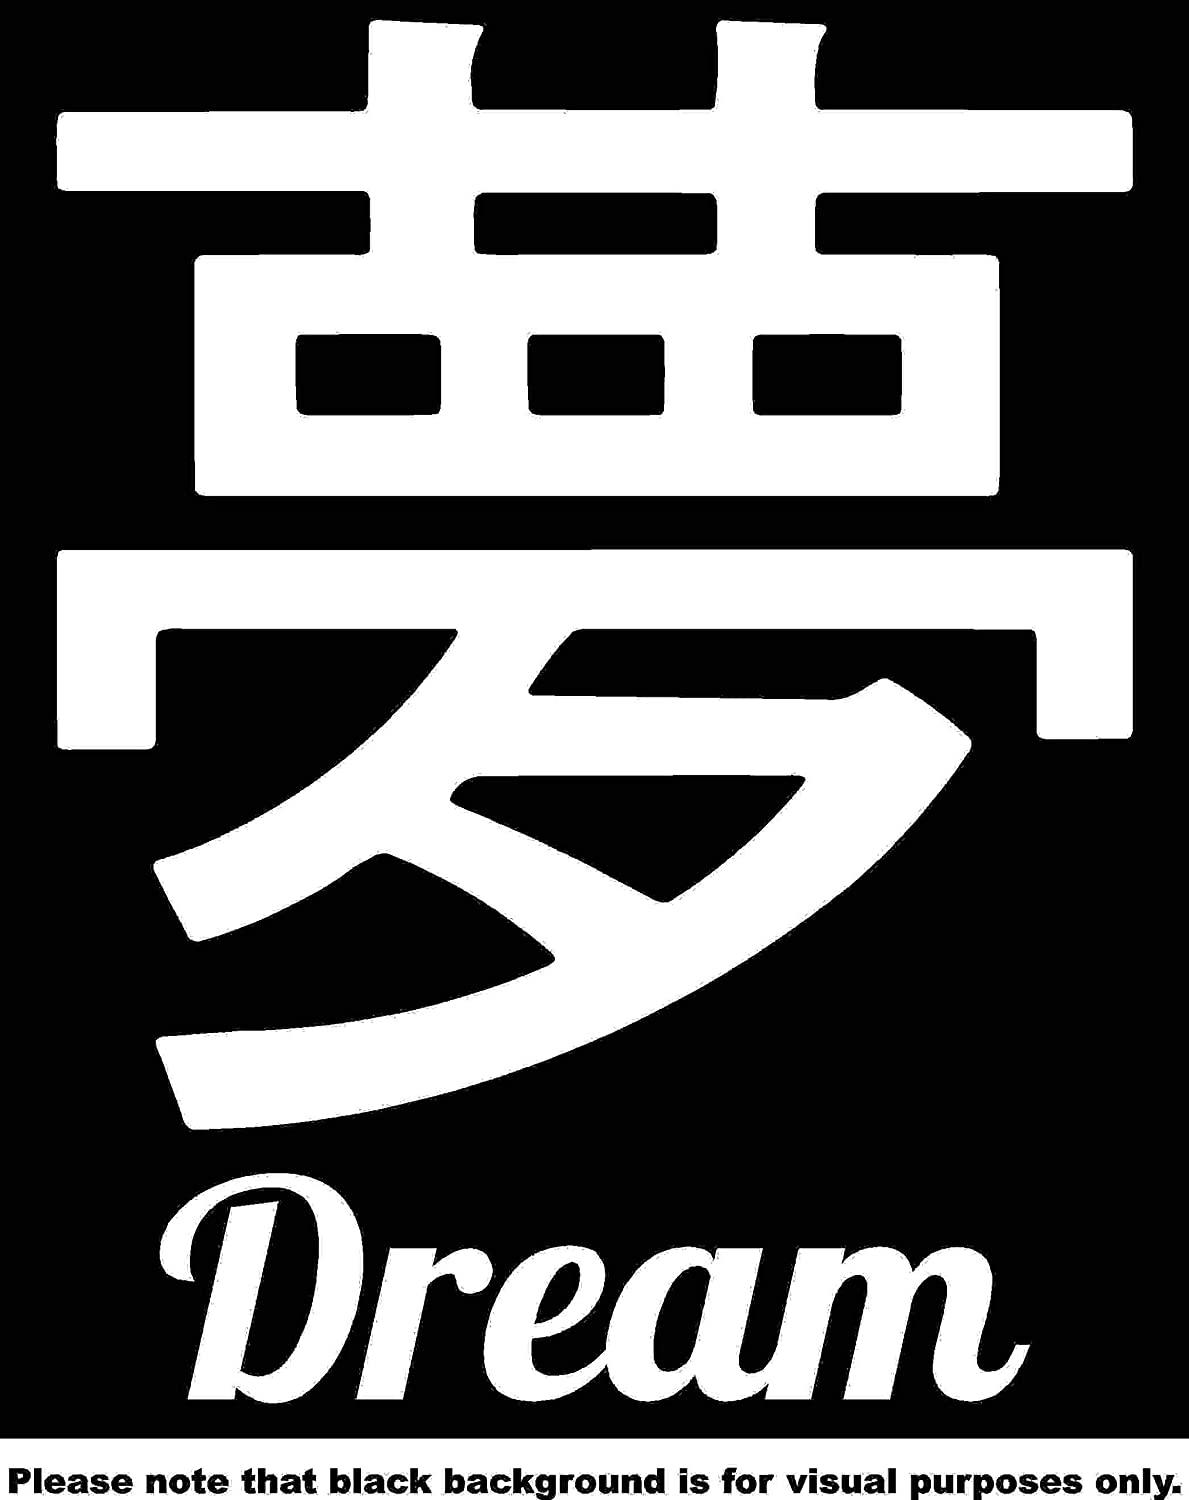 Asian Character Writing Dream Car Window Tumblers Wall Decal Sticker Vinyl Laptops Cellphones Phones Tablets Ipads Helmets Motorcycles Computer Towers V and T Gifts